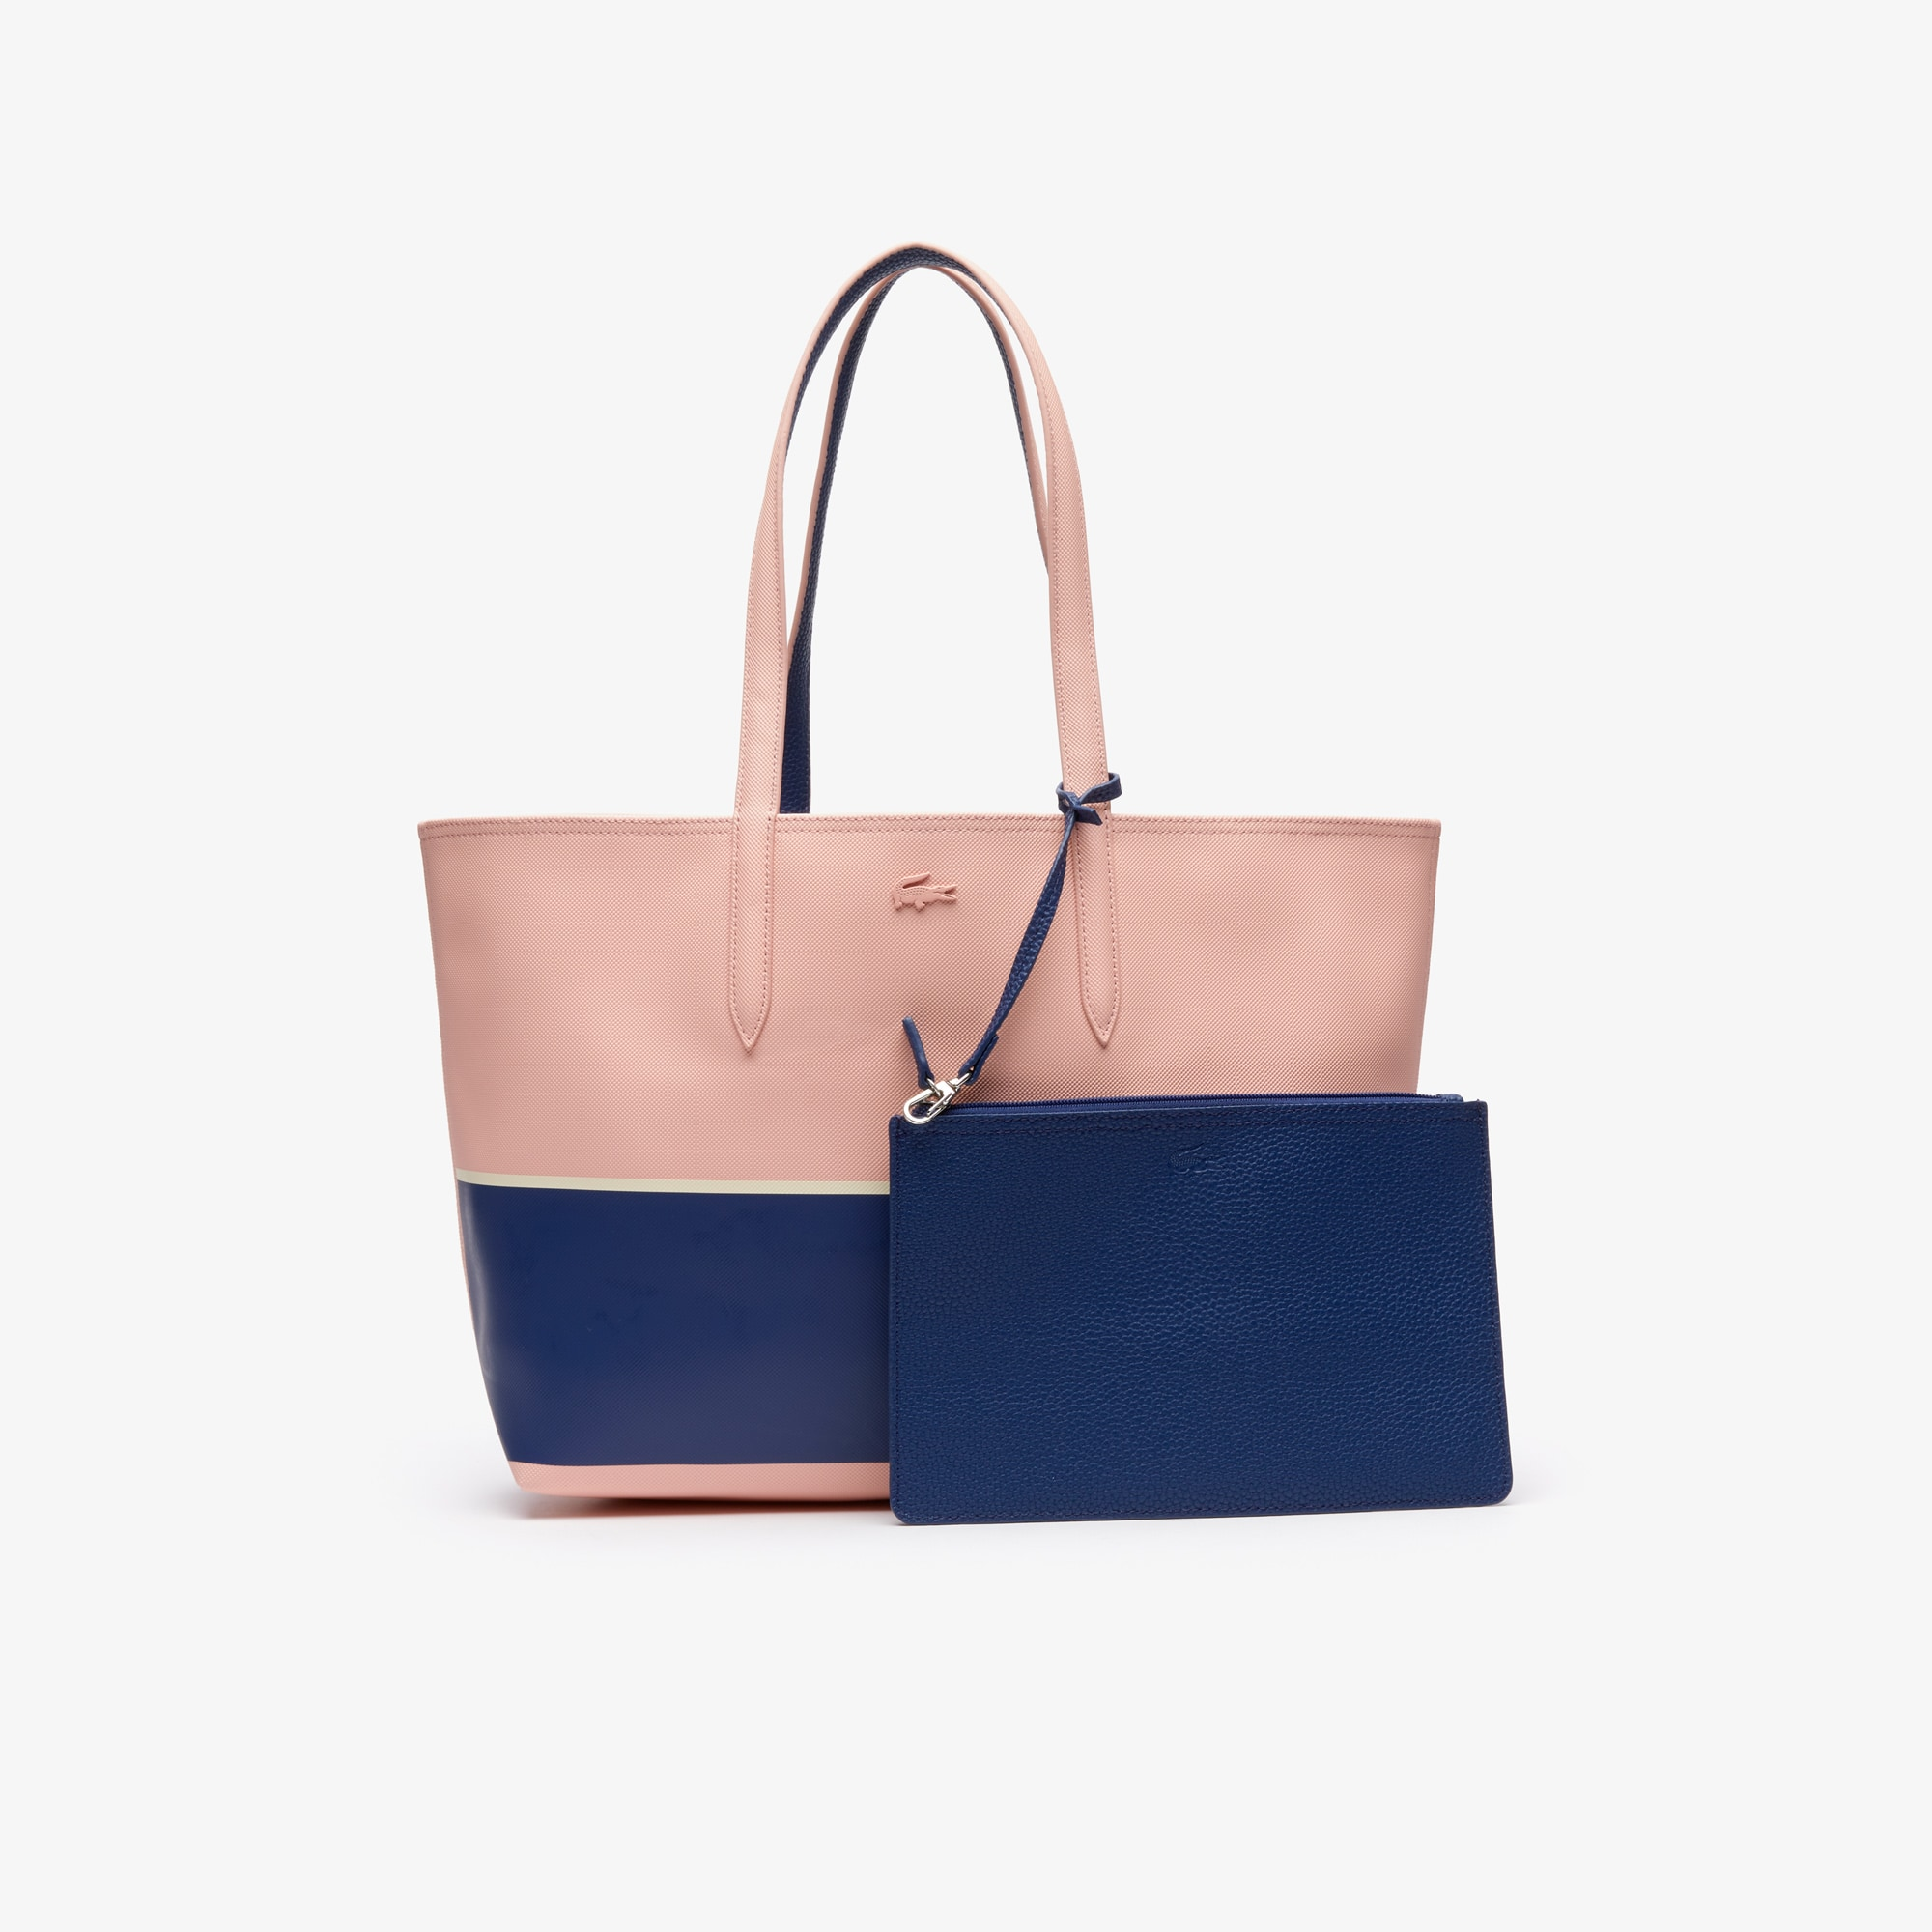 a8d4fb43b5 Bags & Handbags Collection | Women's Leather Goods | LACOSTE